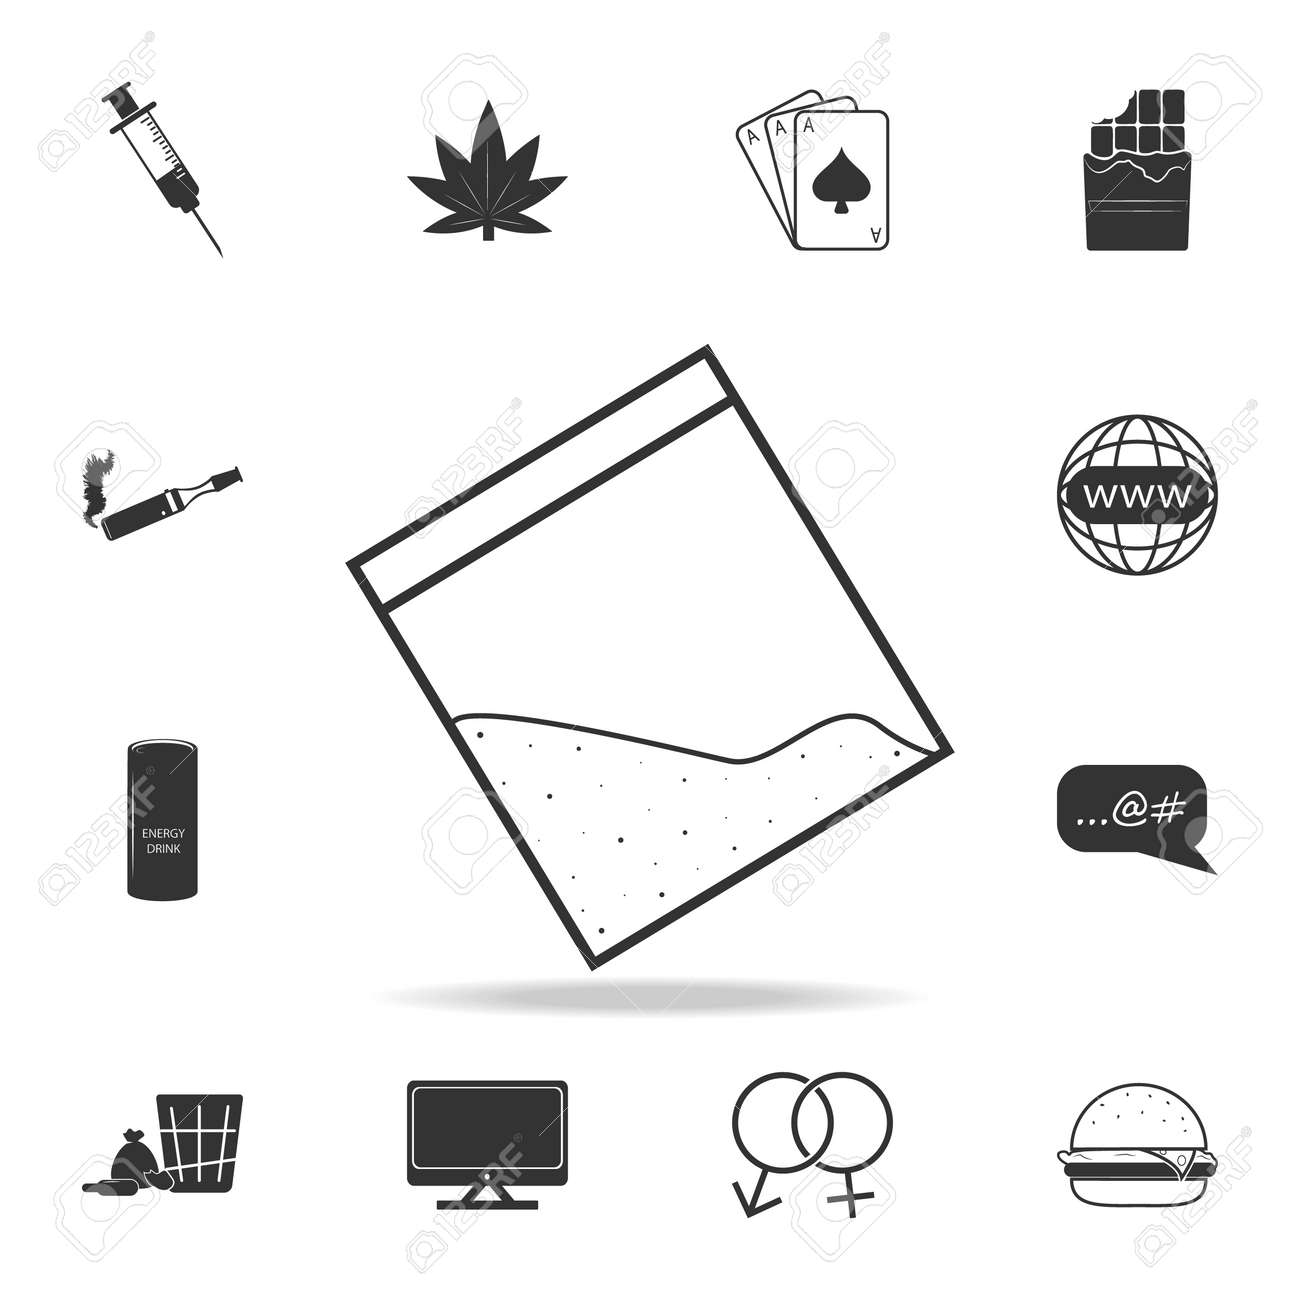 hight resolution of drug cocain in plastic bag with zipper iconset of human weakness and addiction element icon